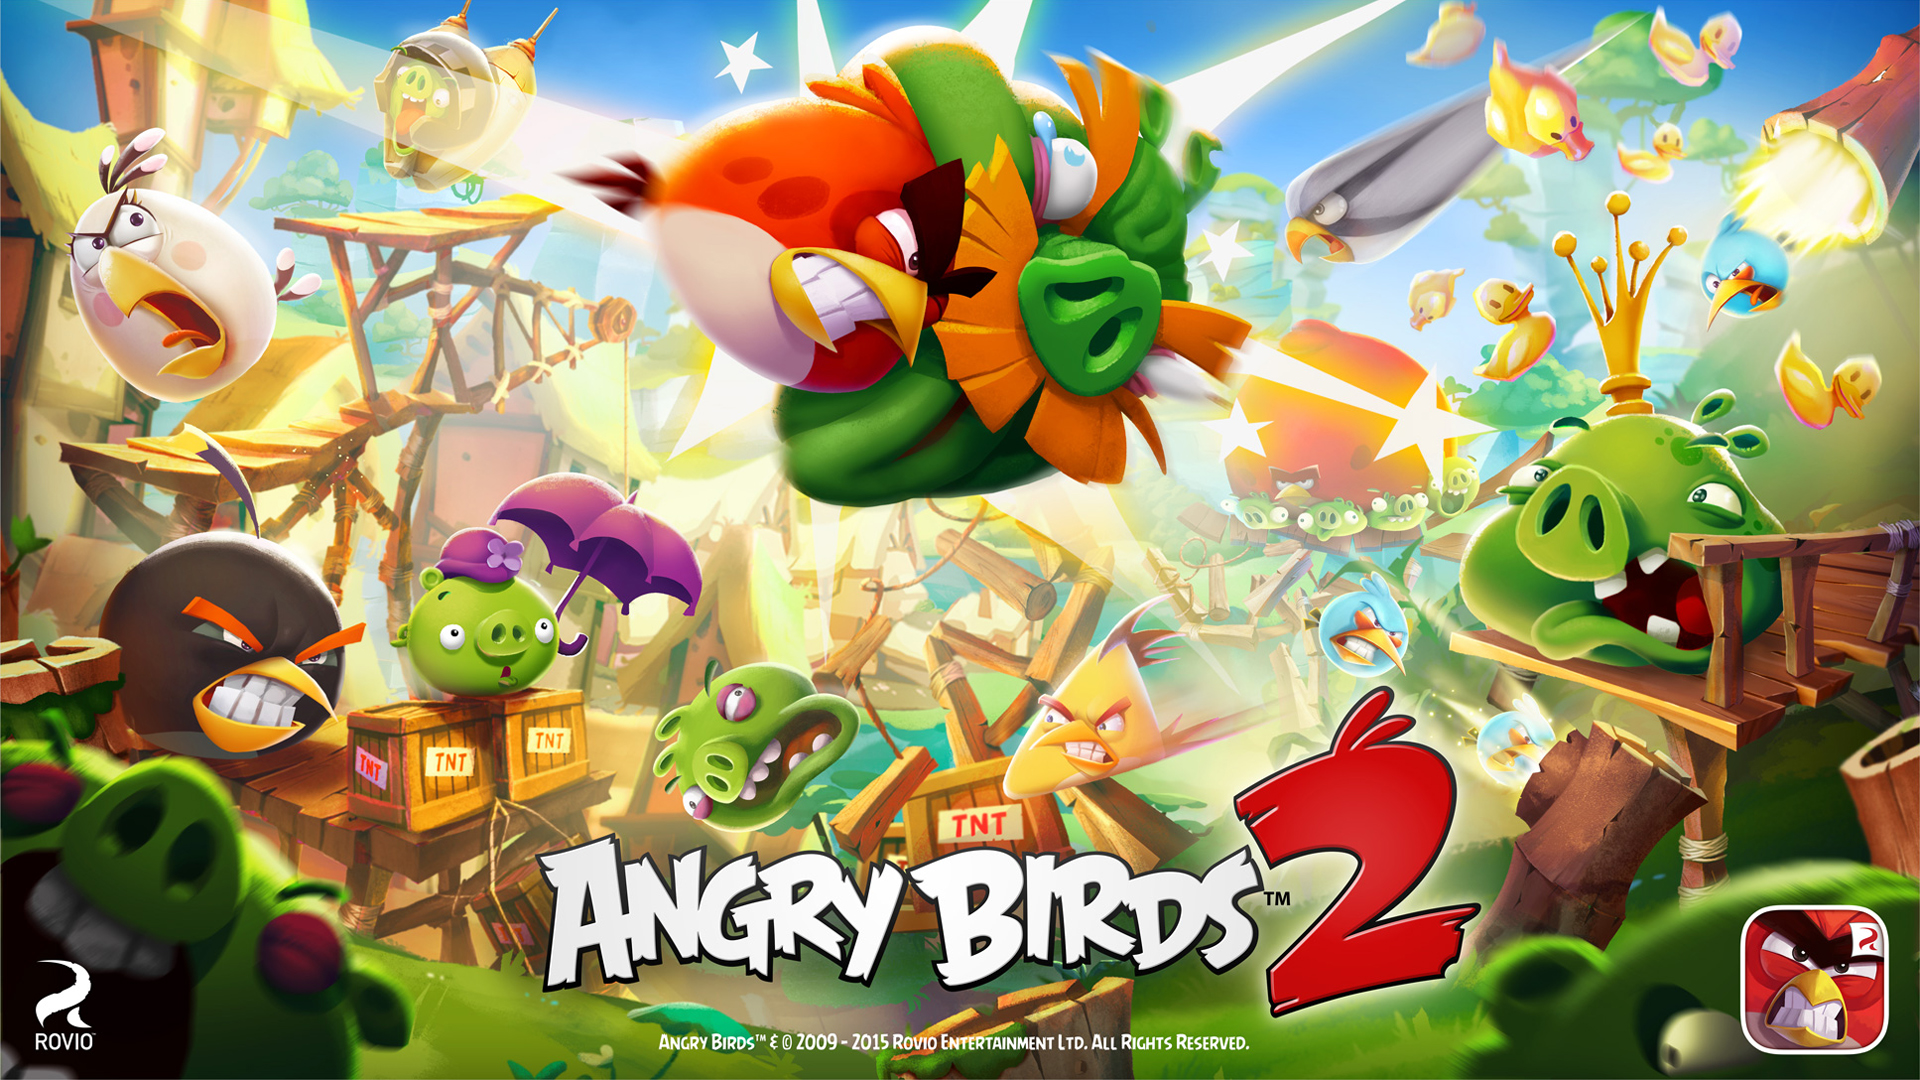 Angry birds 2 full hd wallpaper and background image 1920x1080 video game angry birds 2 wallpaper voltagebd Images